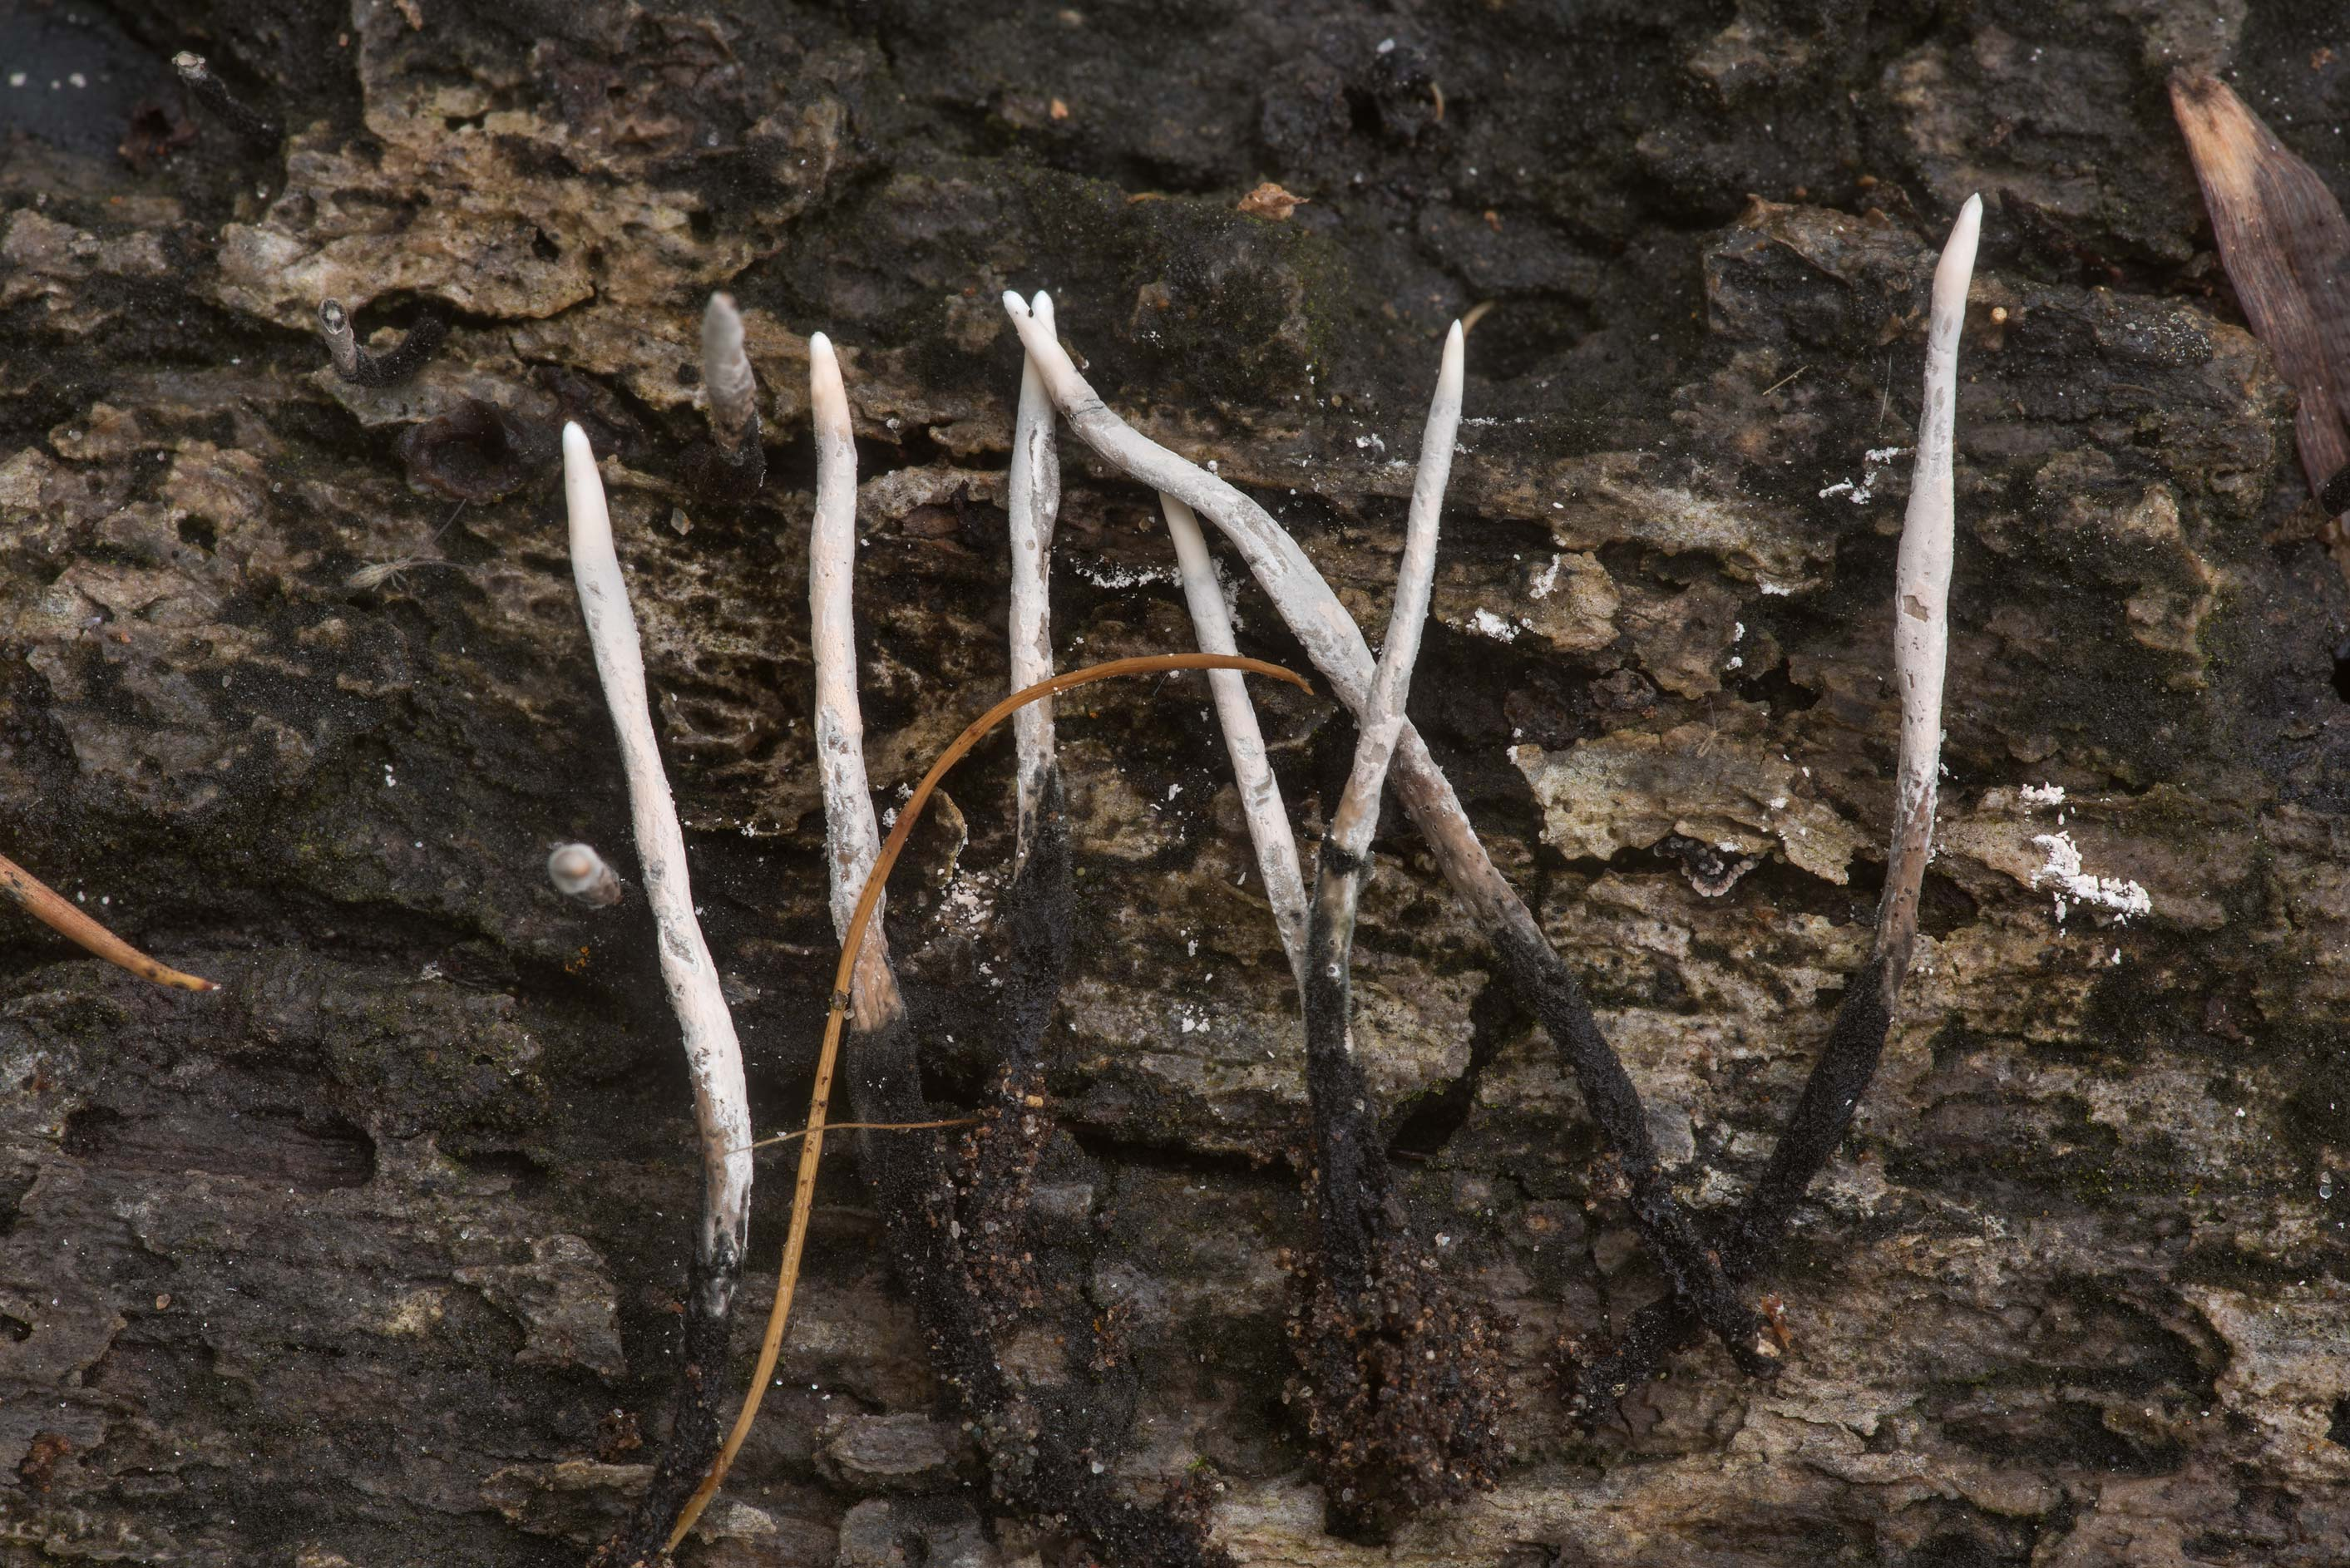 Candlesnuff fungus (Xylaria hypoxylon) on rotting...in Sam Houston National Forest. Texas